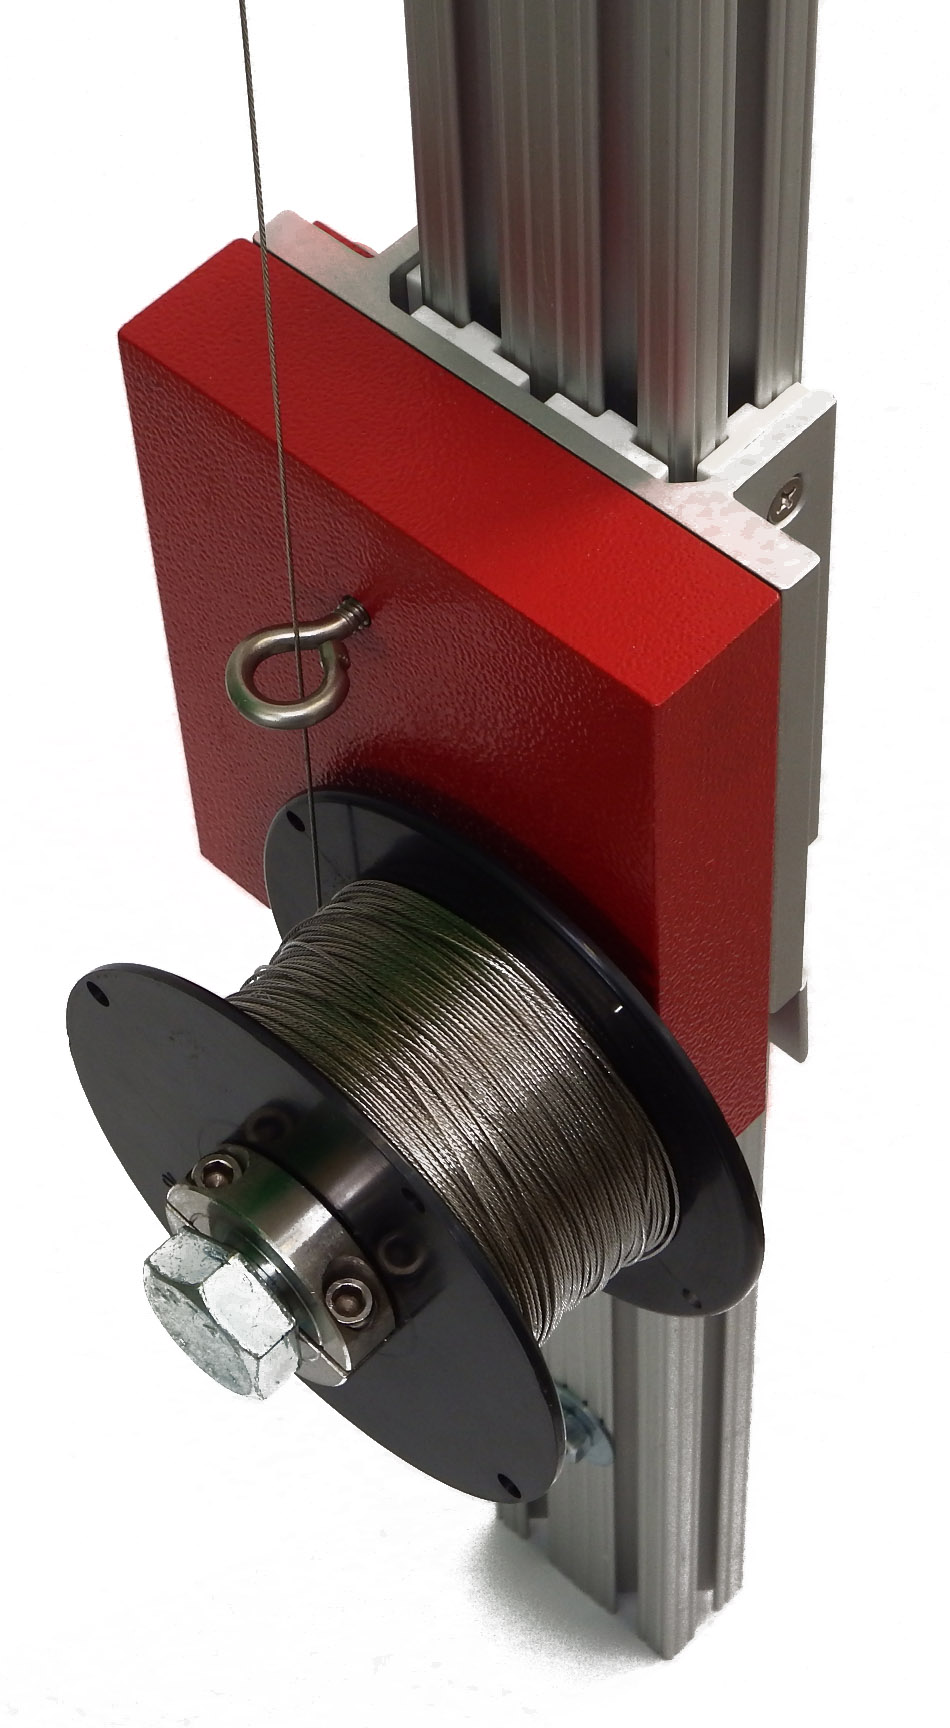 600' (183 m) of specialty wire provides strength with minimal thermal expansion